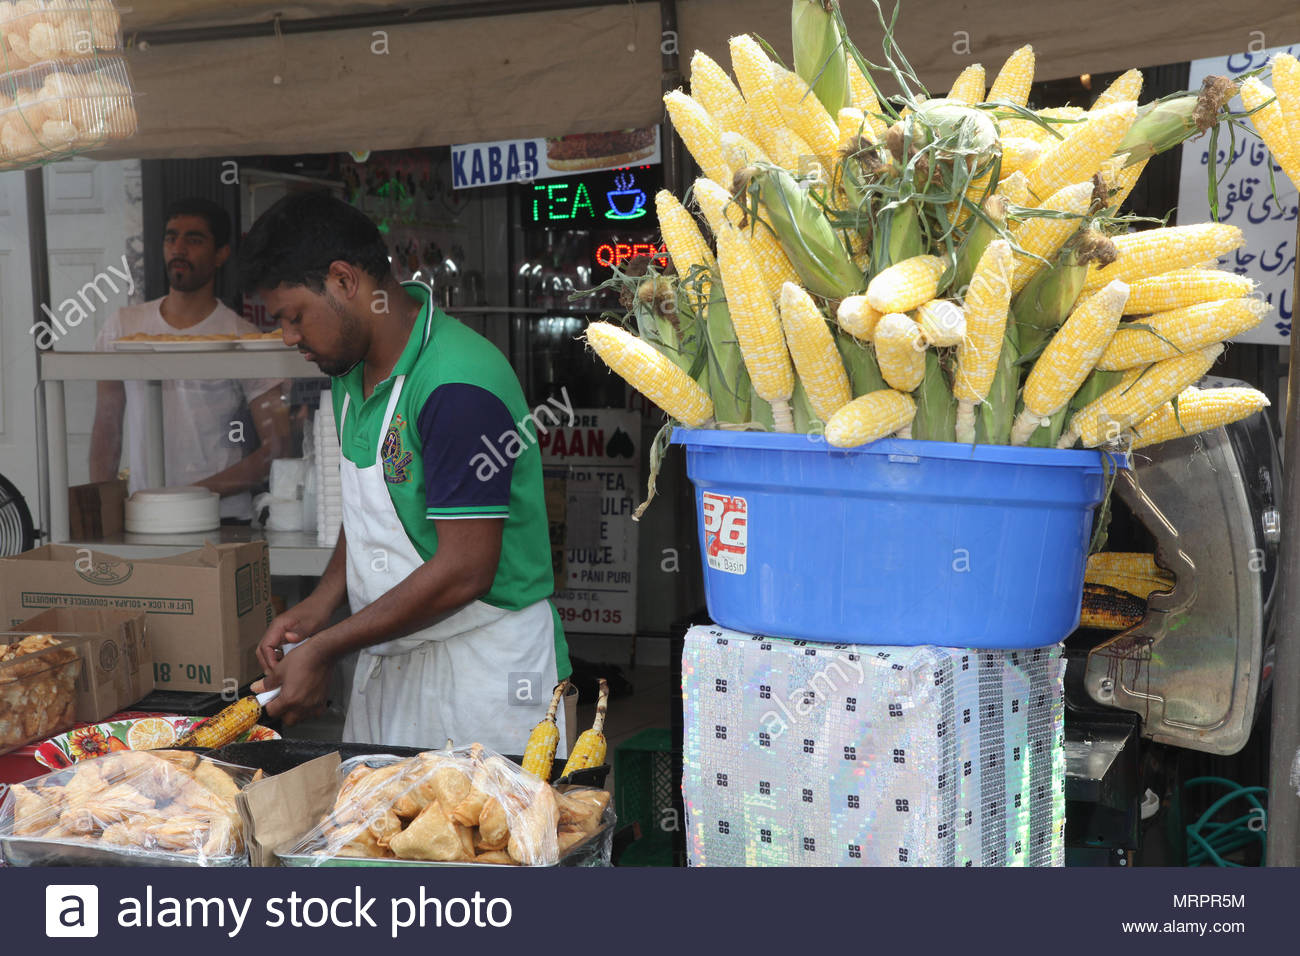 An Indian applies chili powder and other spices to barbecued corn-on-the-cob at Little India in Toronto, Ontario, Canada. Stock Photo